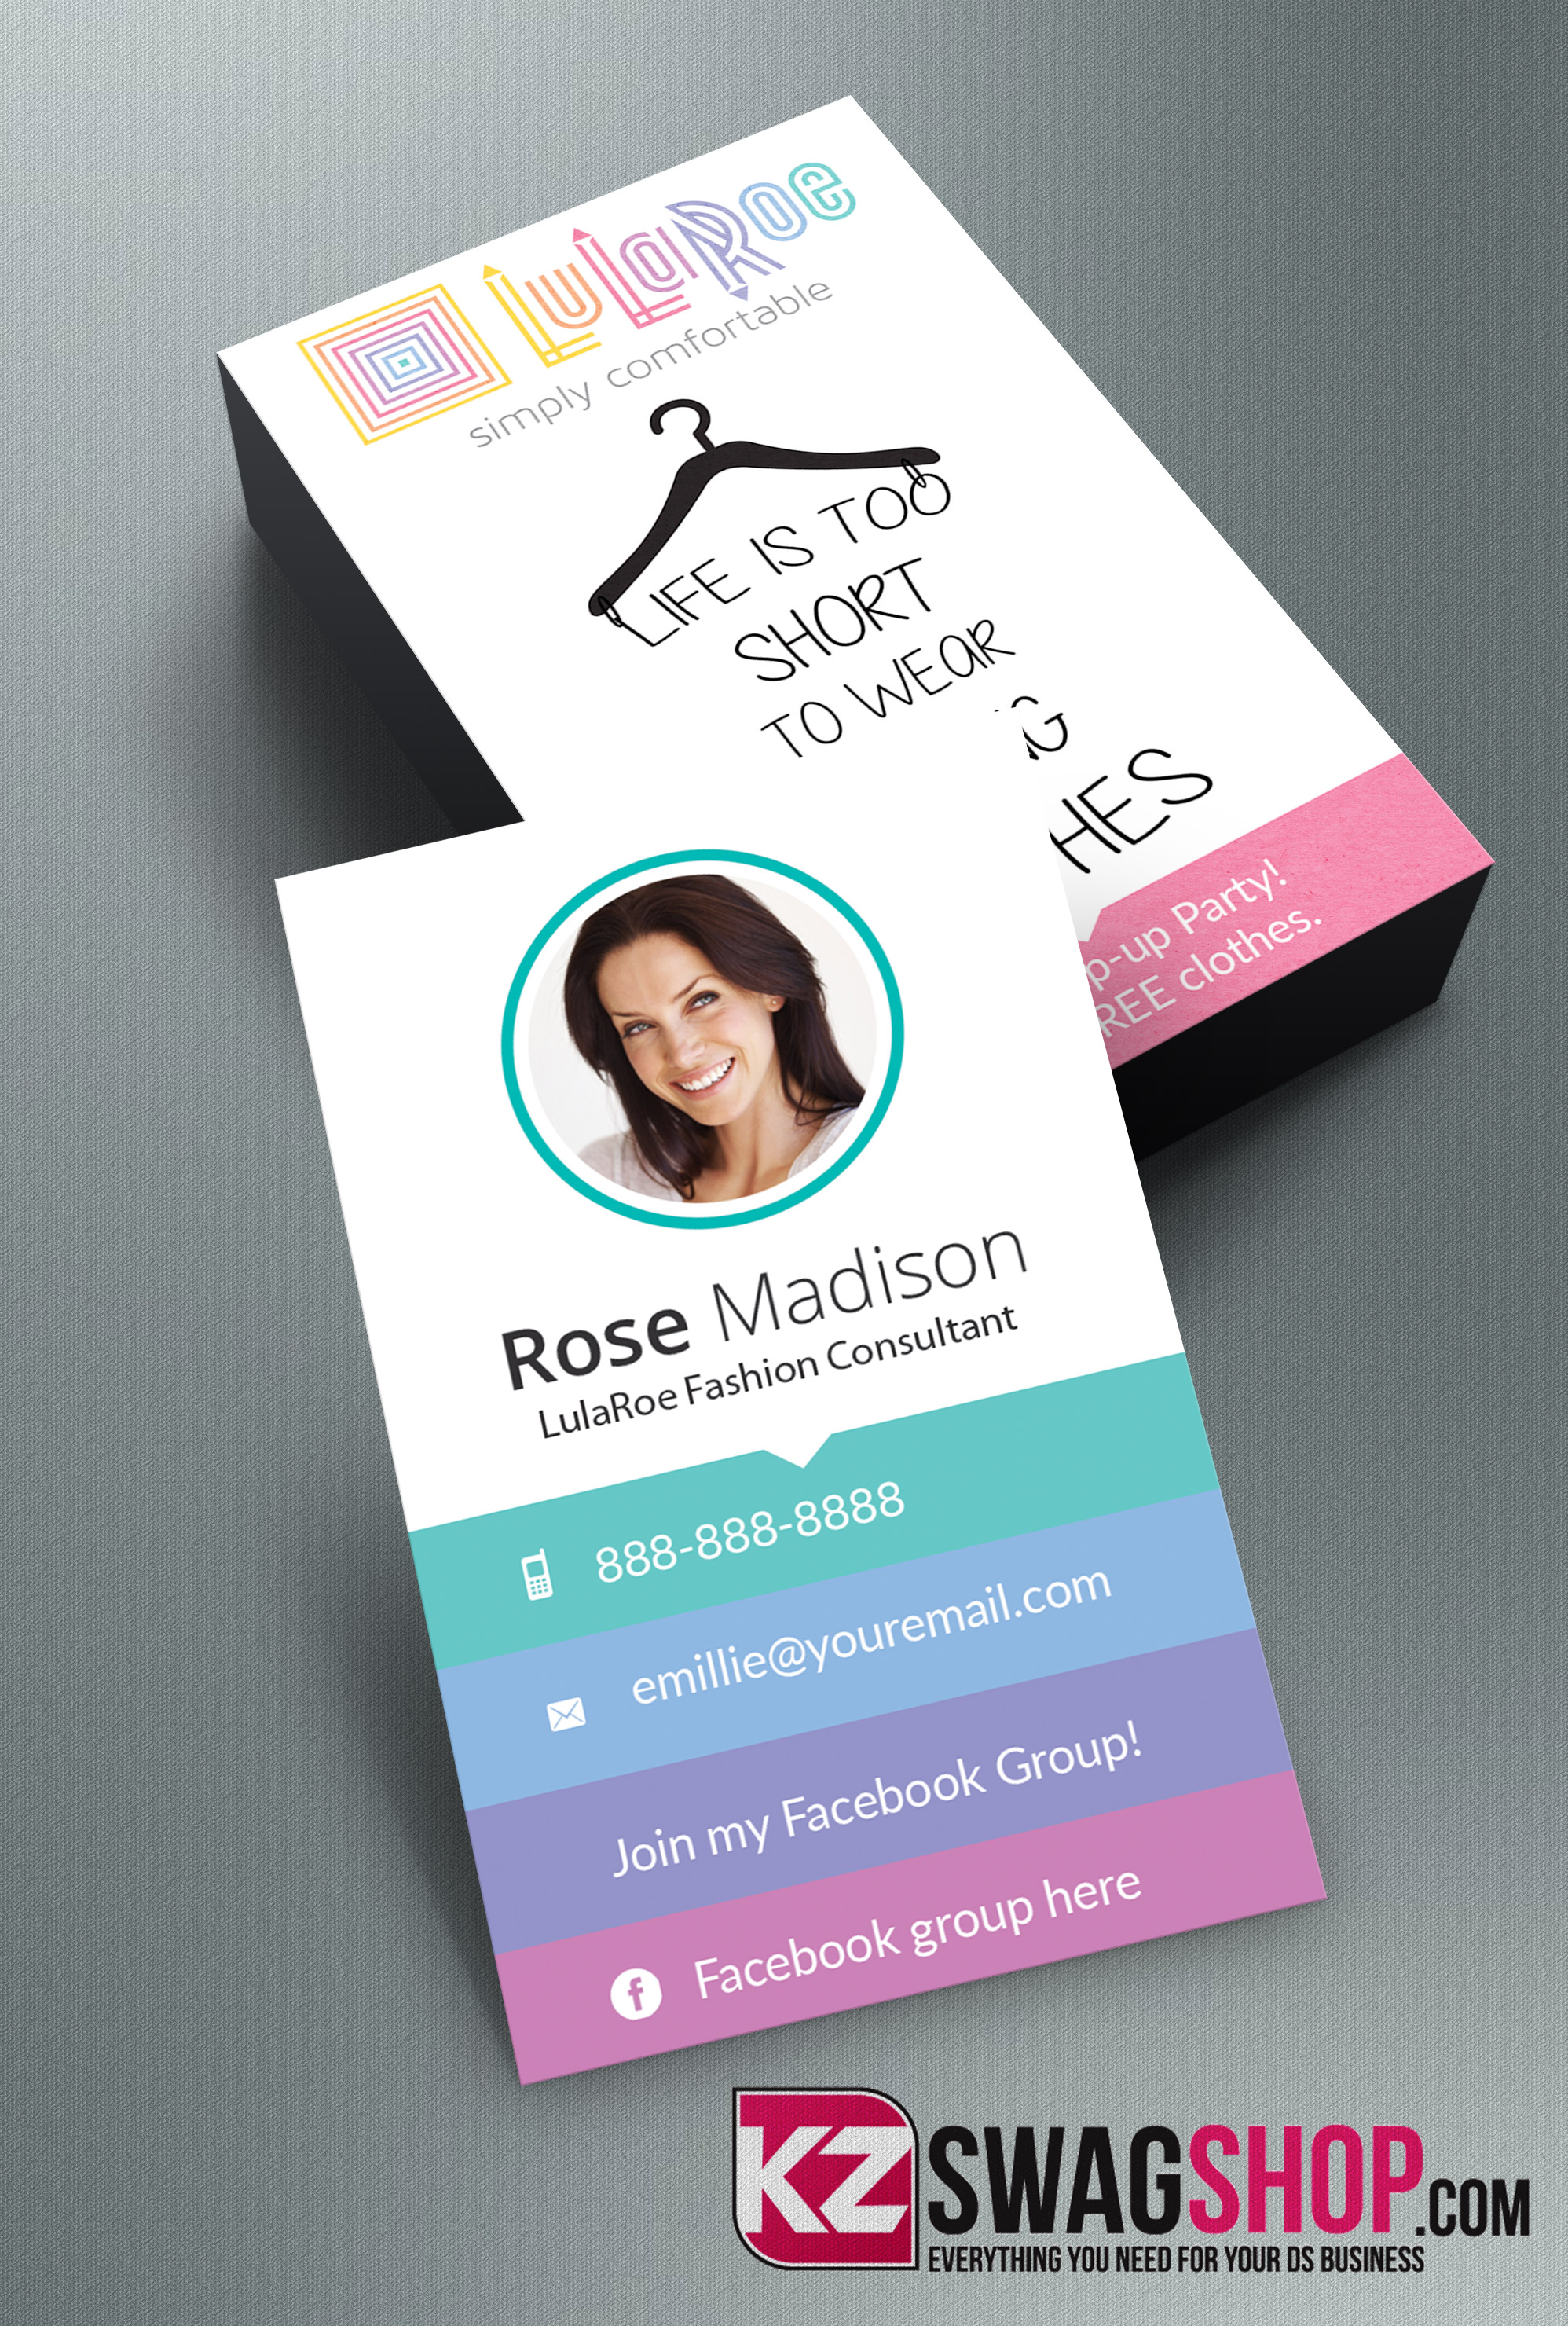 Lularoe business cards 2 kz creative services online store lularoe business cards 2 colourmoves